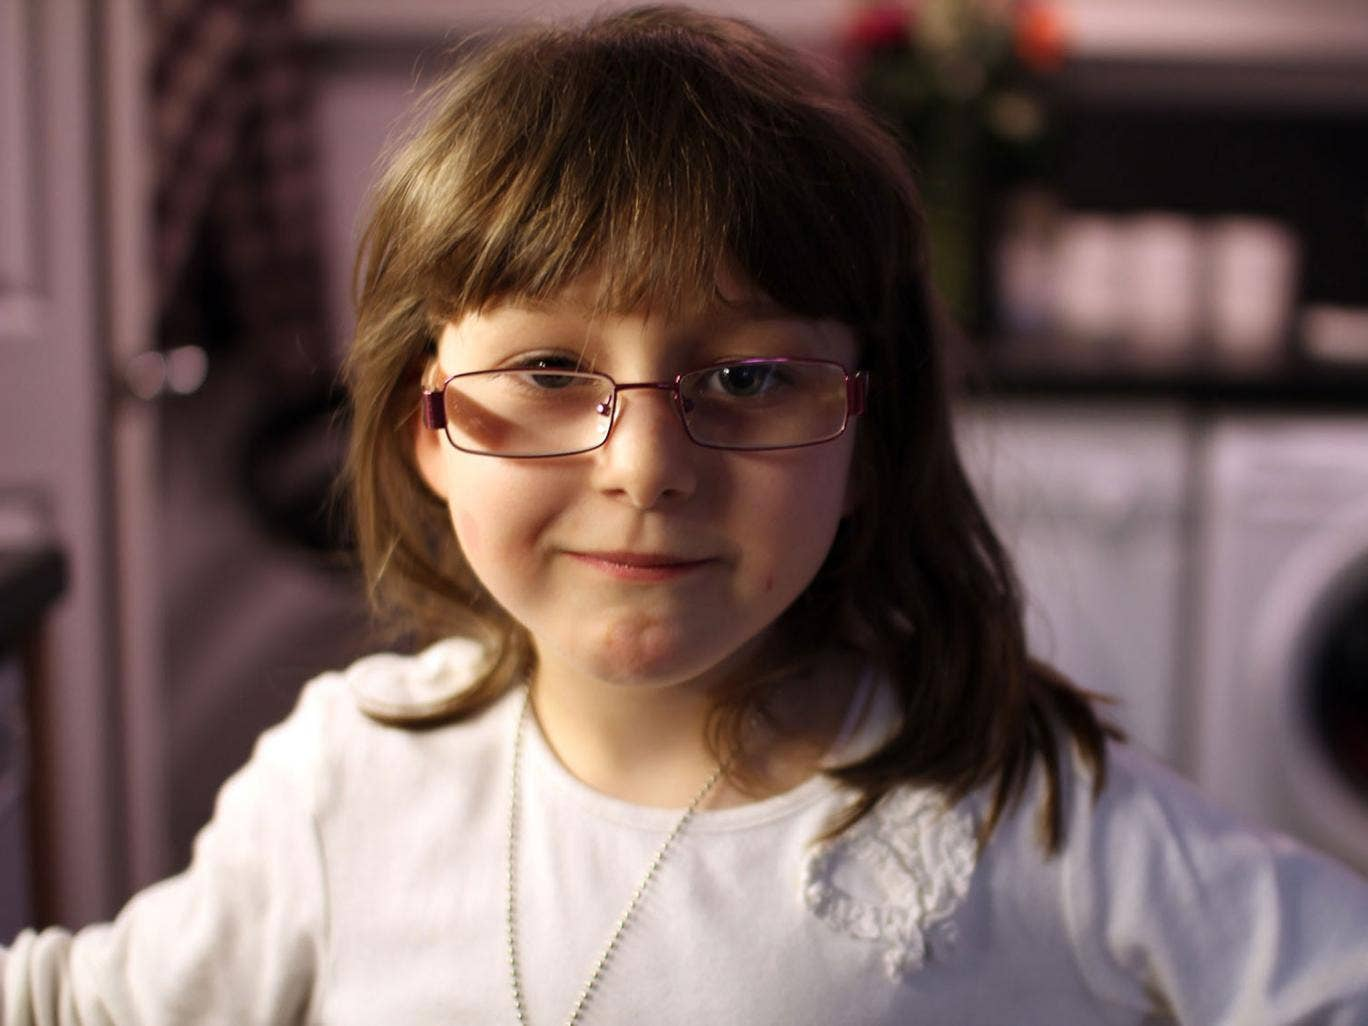 Lauren is one of the children featured on 15,000 Kids and Counting